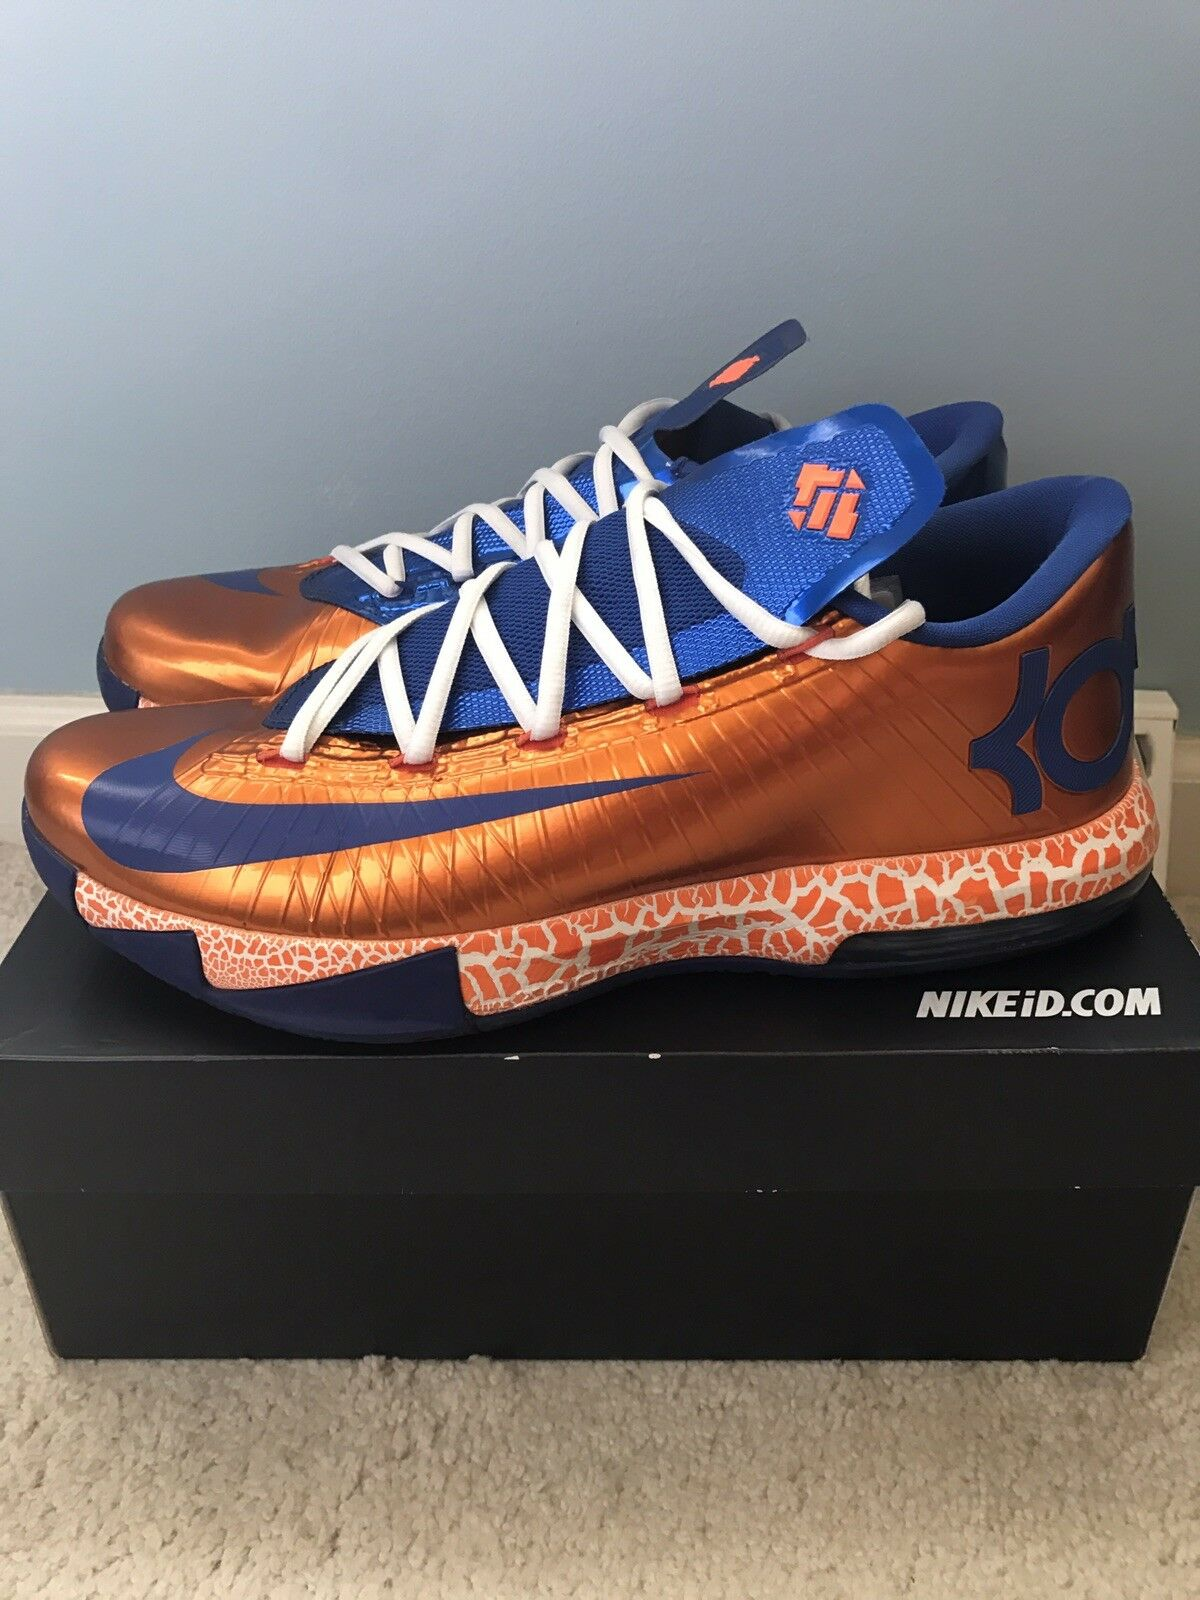 KD 6 Nike ID Size 11.5 Made By Nfl Player